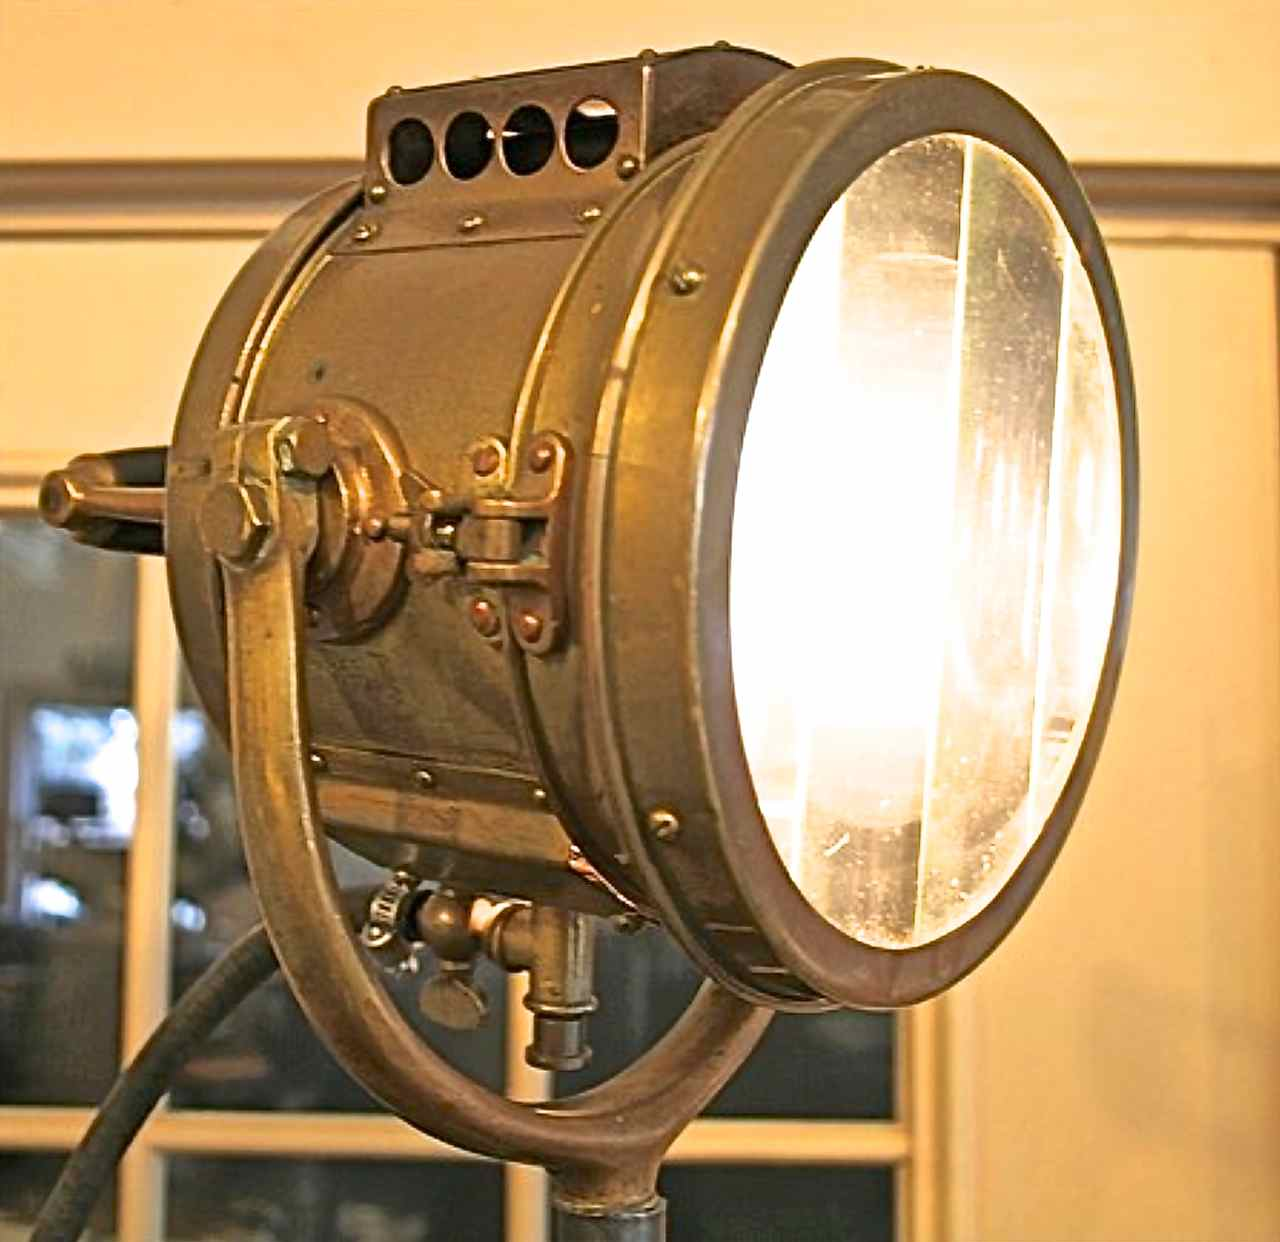 Using A Vintage Rushmore Search Light During A Power